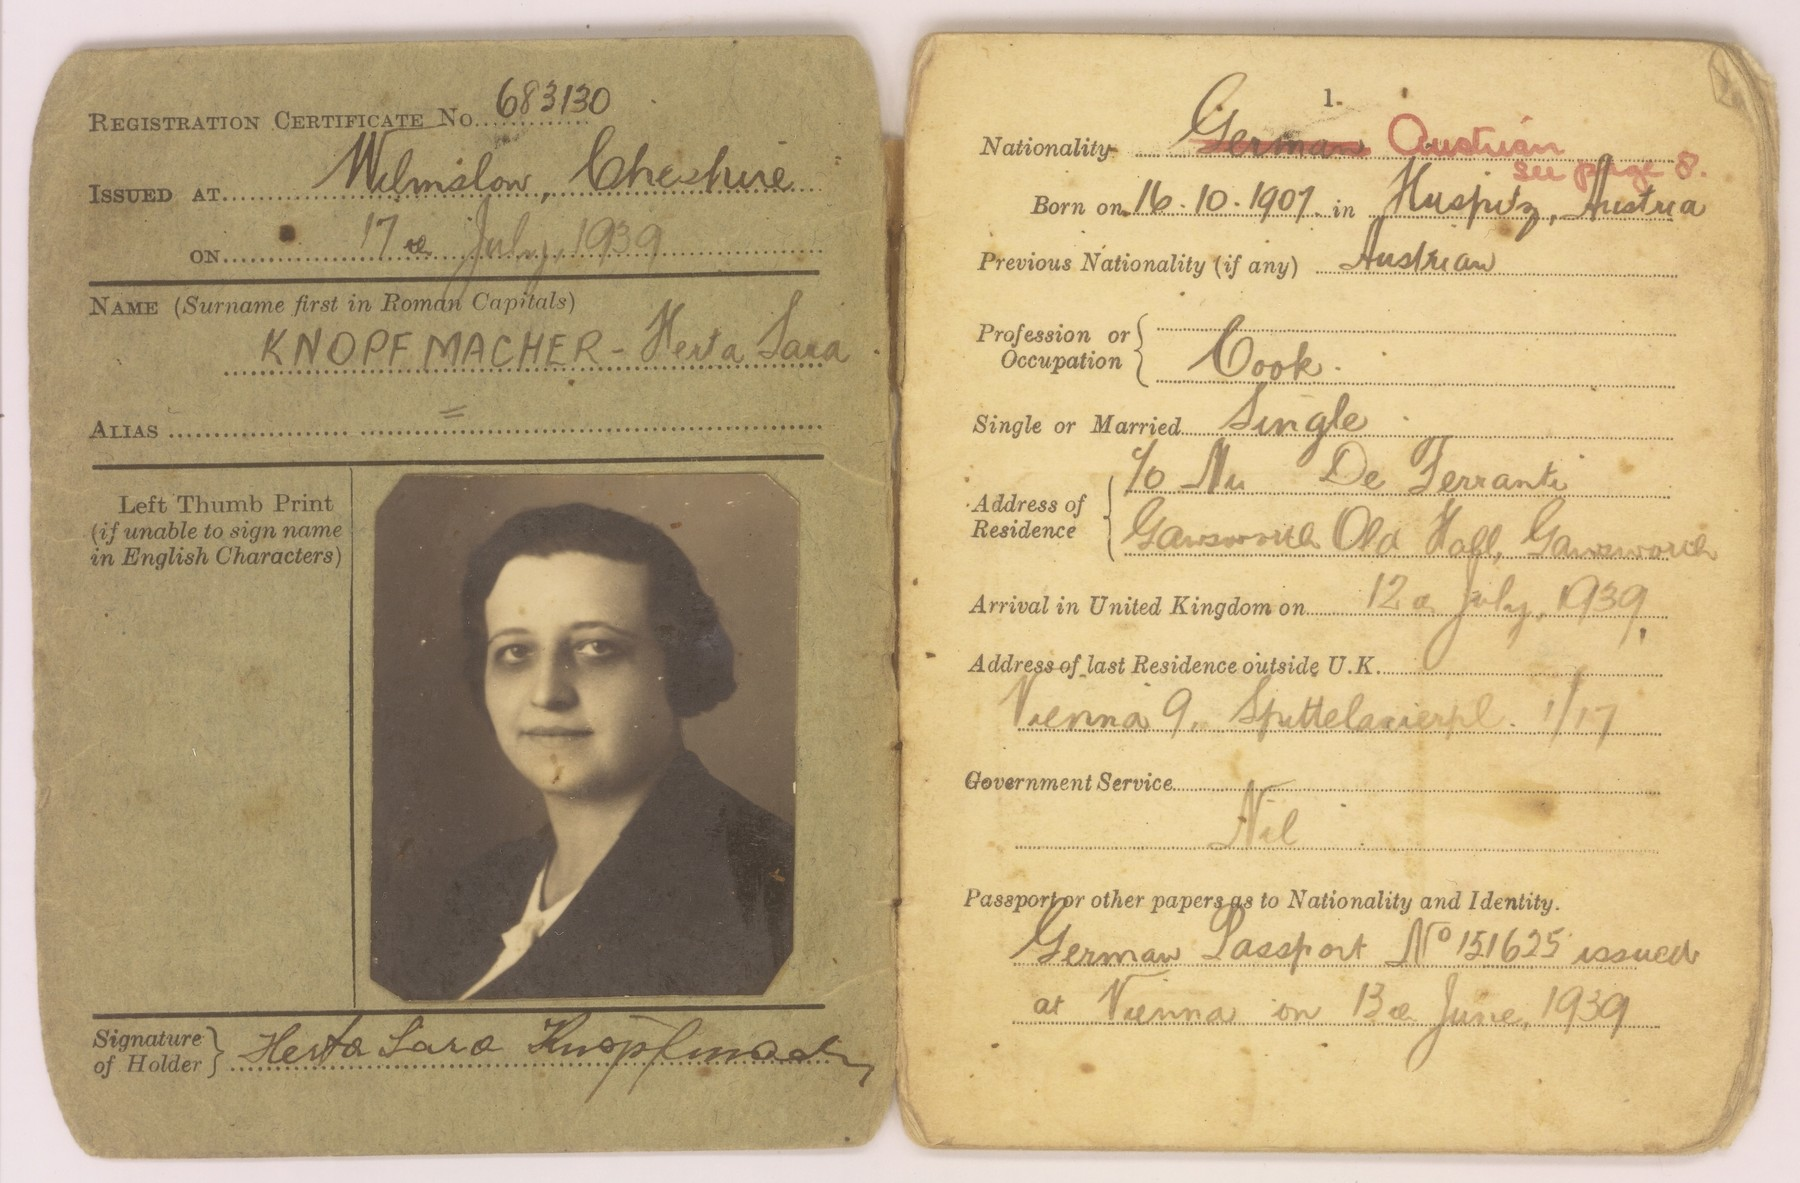 Alien Certificate of Registration issued to Herta Knopfmacher.  This certificate allowed Herta Knopfmacher, an Austrian Jew, to enter Great Britain as a refugee from Hitler on condition that she not seek any employment other than domestic service.  The certificate had to be stamped by the local police department each time she changed residences.  The final stamp marks her departure to the United States in 1946.